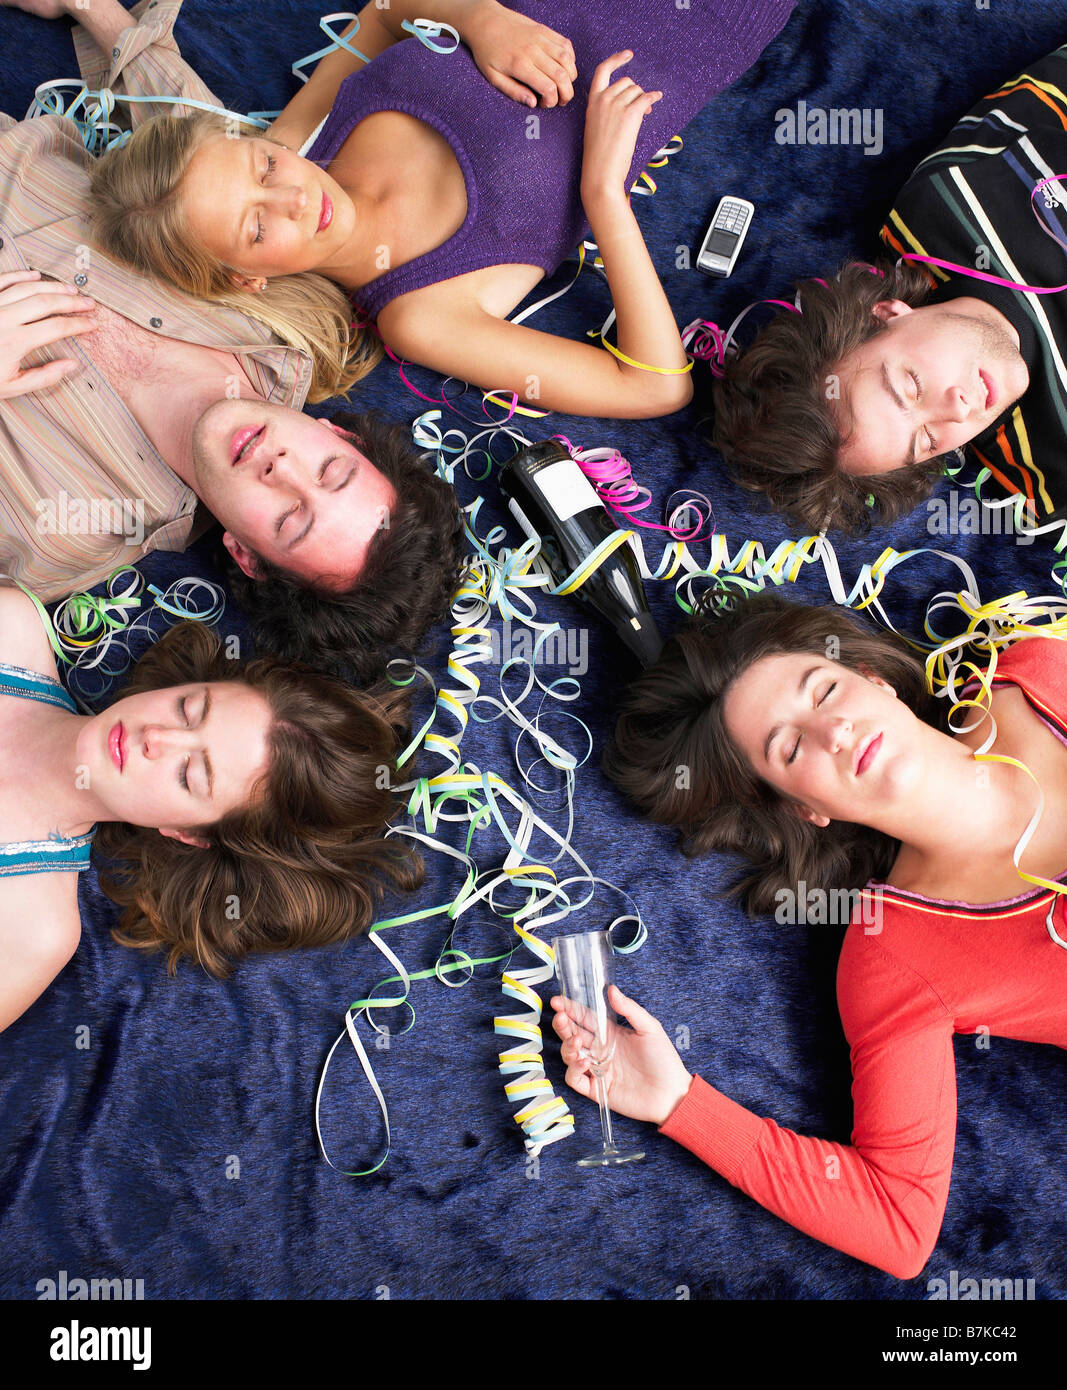 Friends sleeping on floor after party - Stock Image